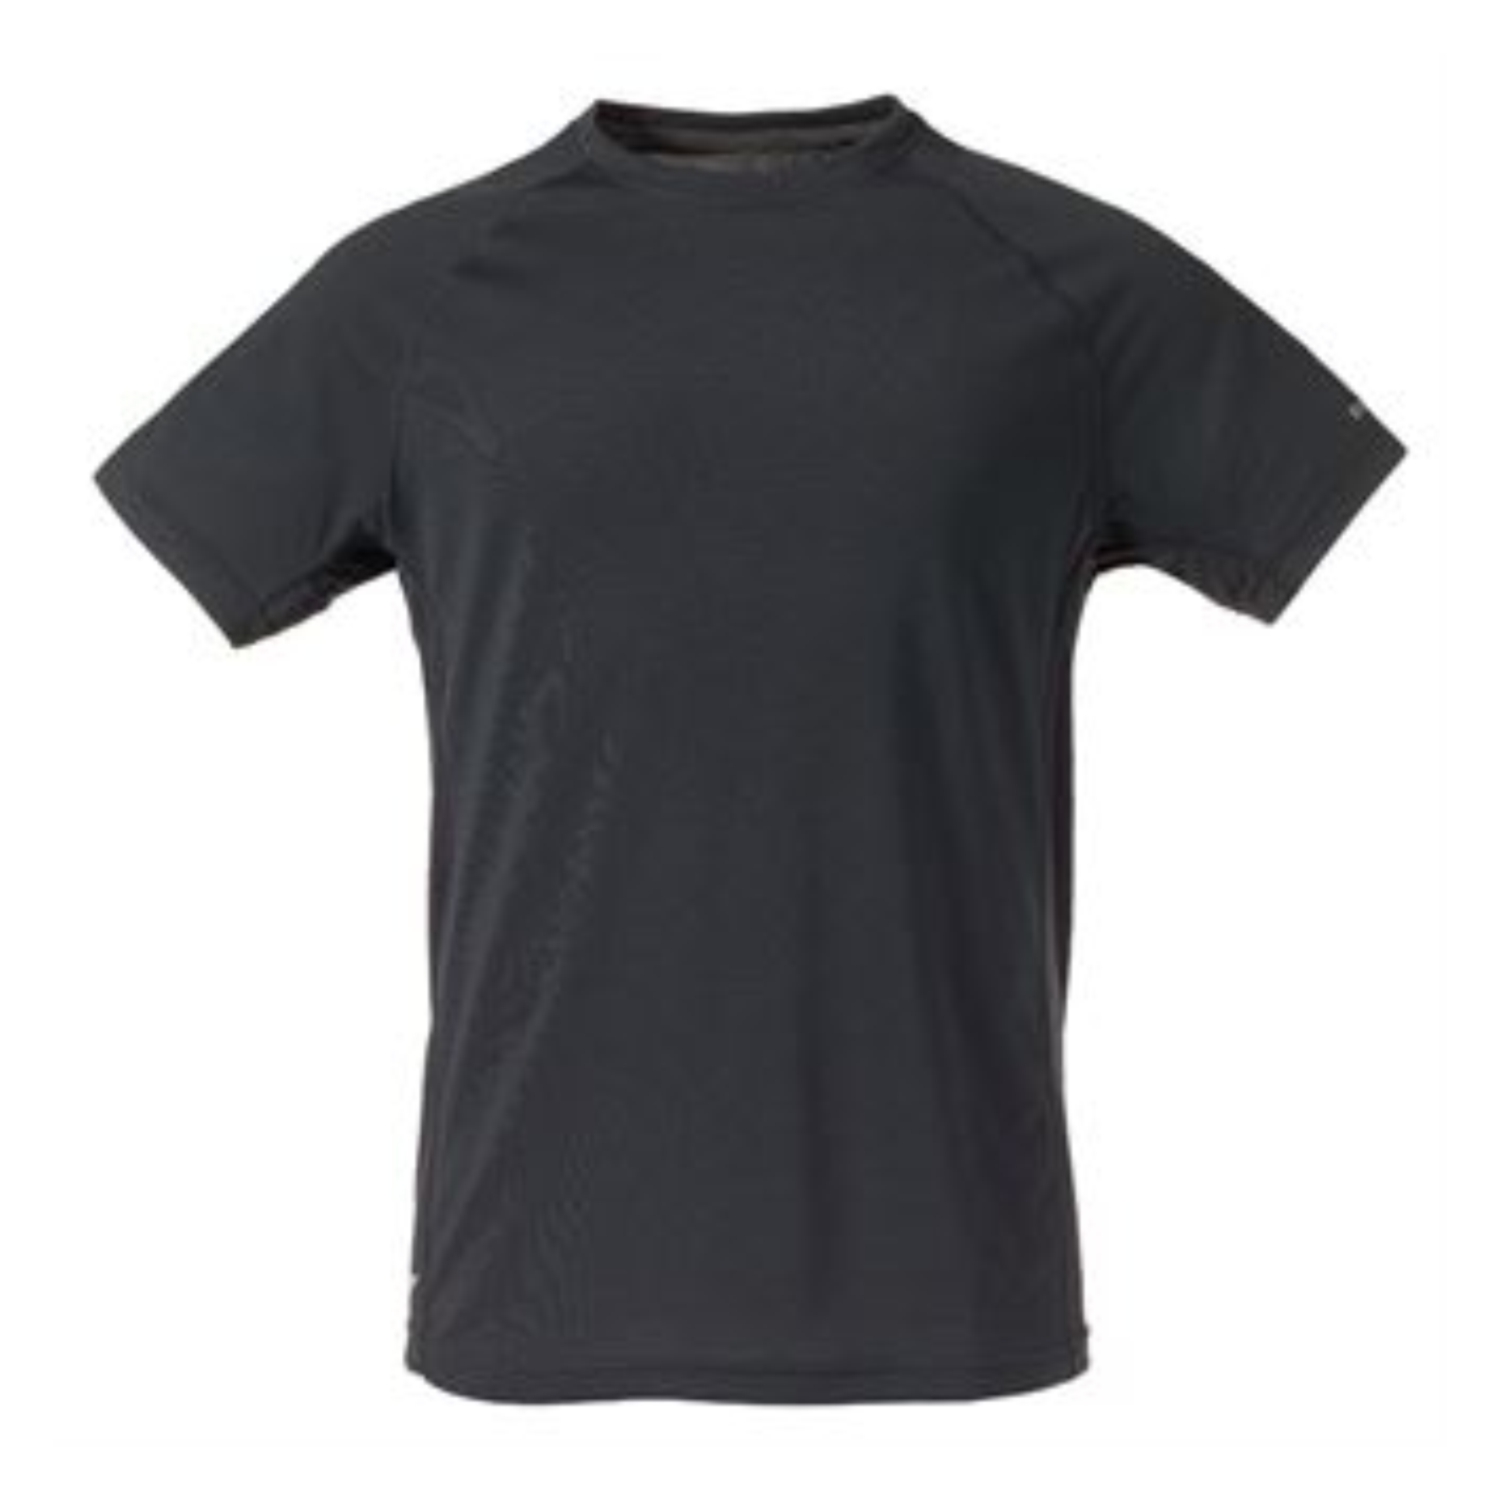 T-Shirts - Uniforms, Clothing & Workwear